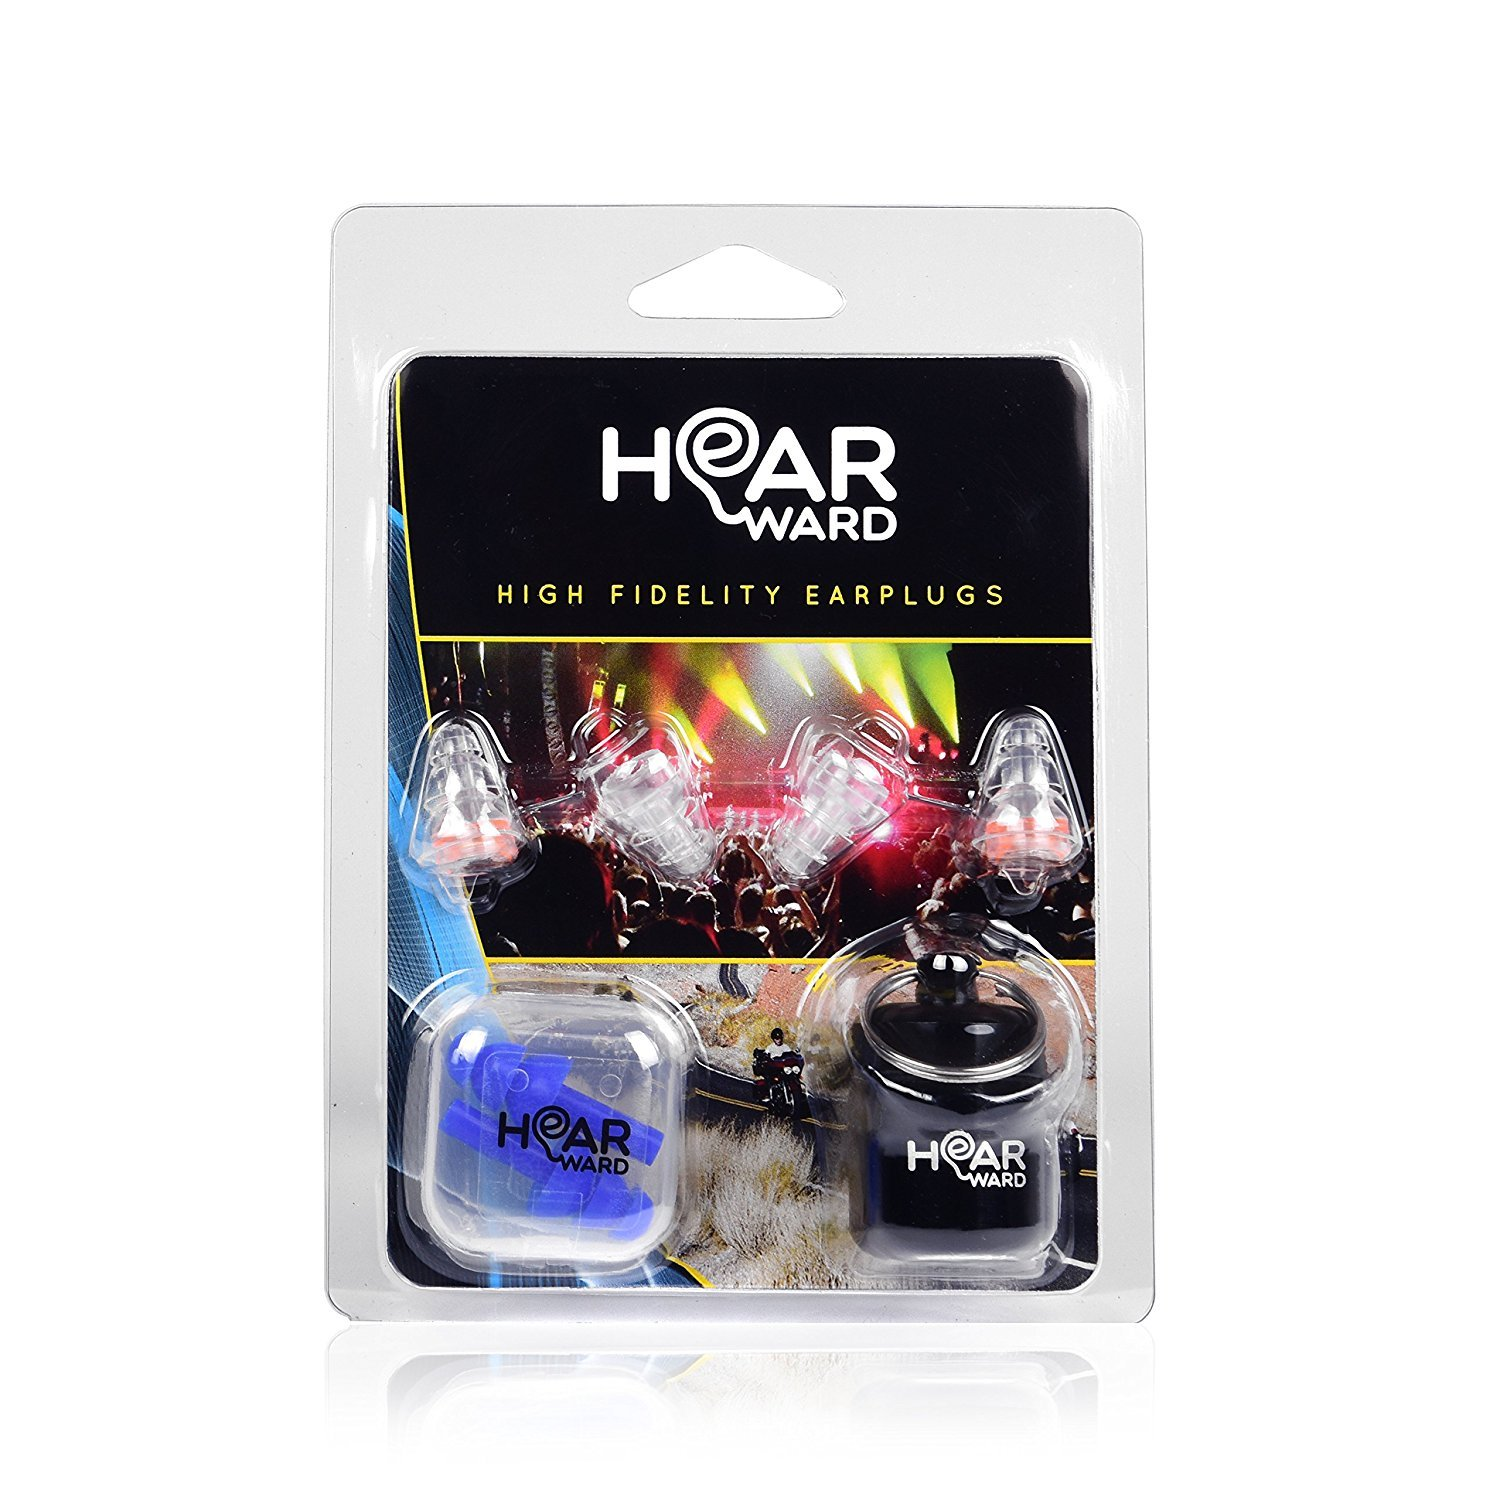 High Fidelity Reusable Earplugs By HearWard: Noise Reduction Ear Plugs For Sleeping, Concerts, Racing, Study & Travel – Smaller Earplugs & Water Blocking Swimming Ear Plugs Included by Hearward (Image #9)